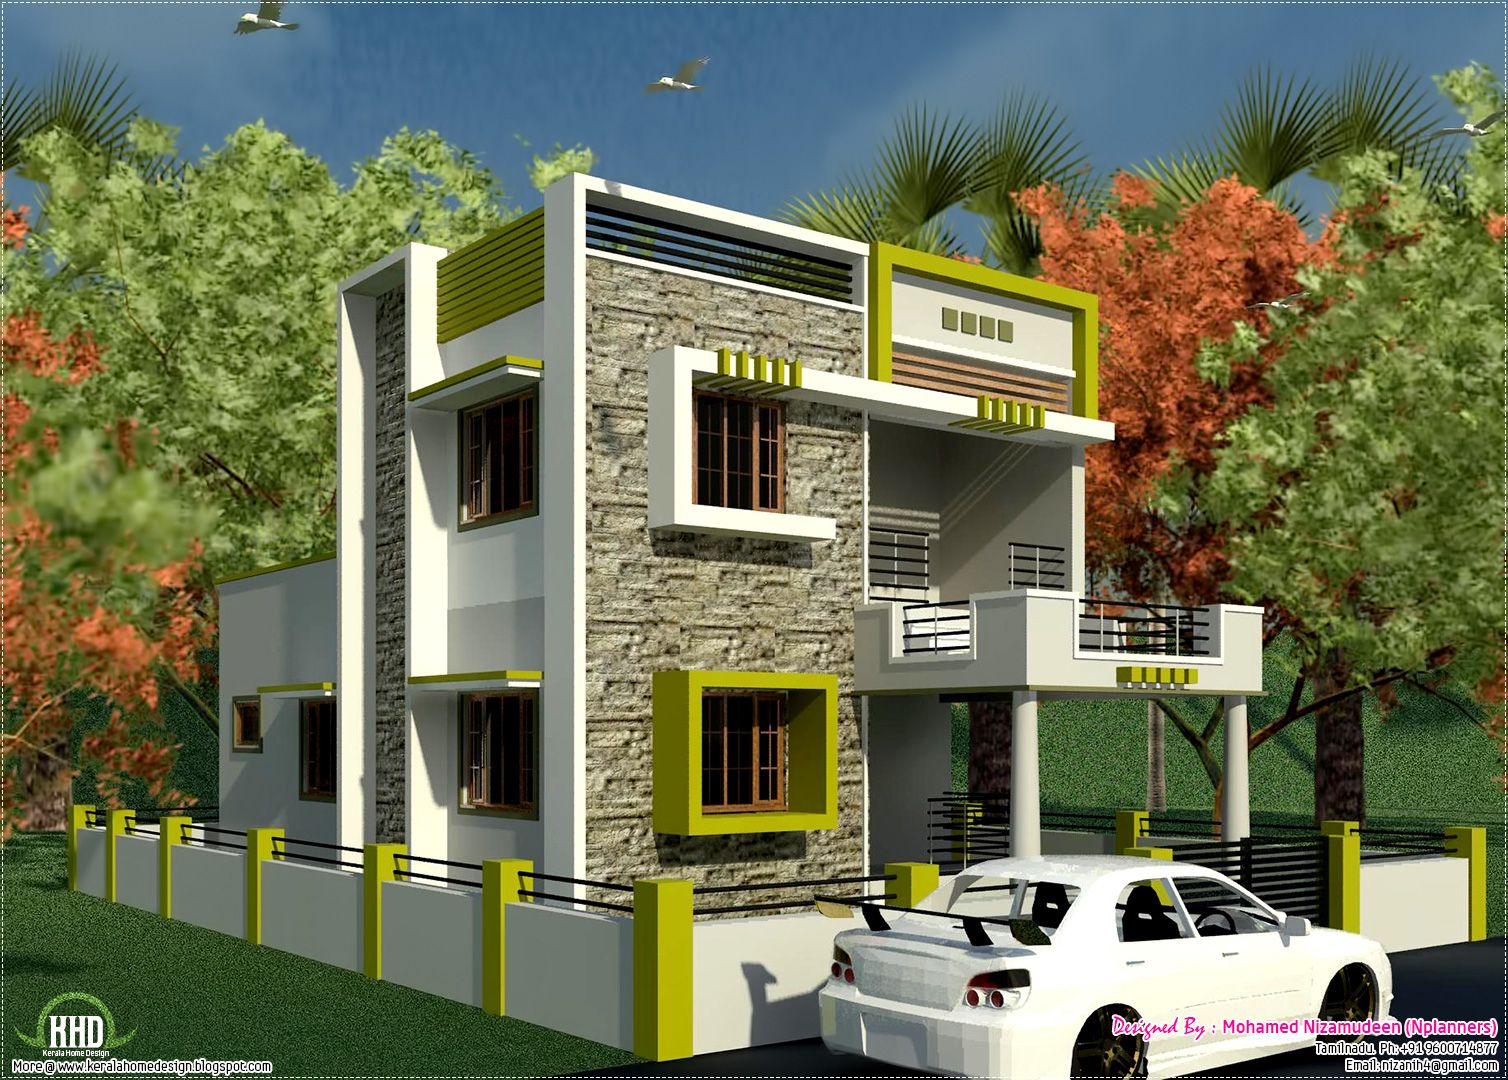 Small house with car park design tobfav com ideas for for Indian home design 2011 beautiful photos exterior